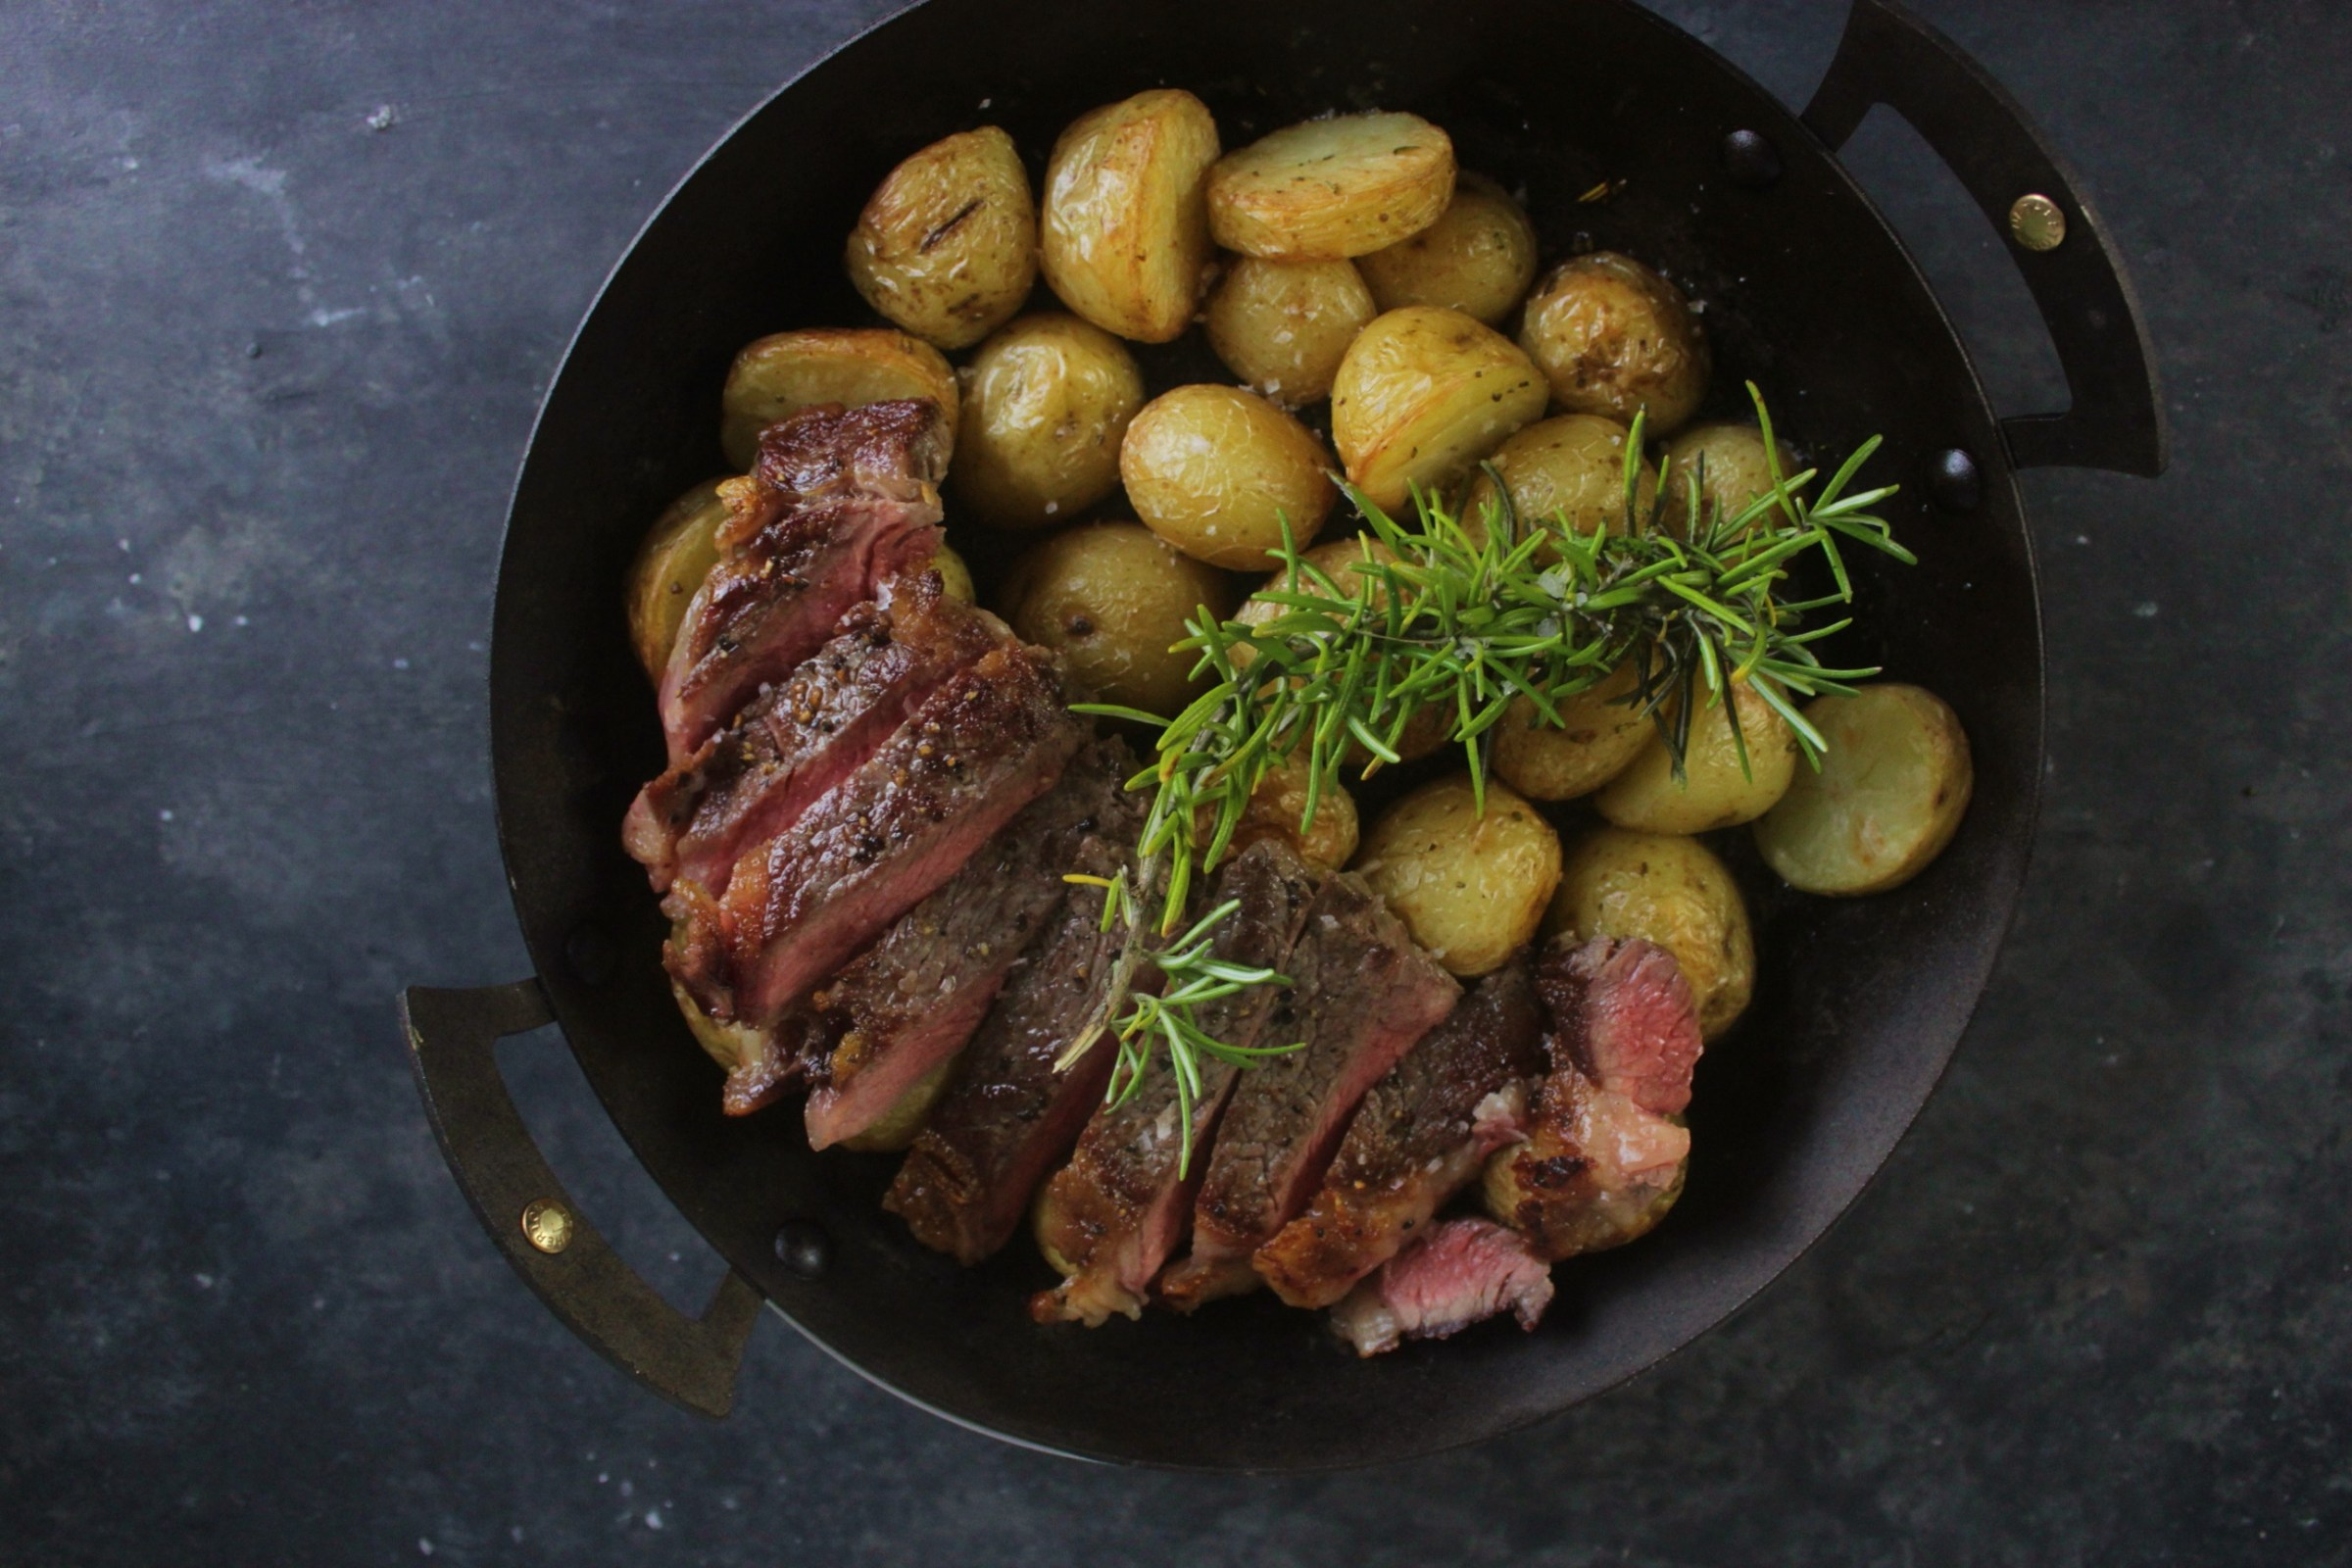 Steak with Rosemary Potatoes